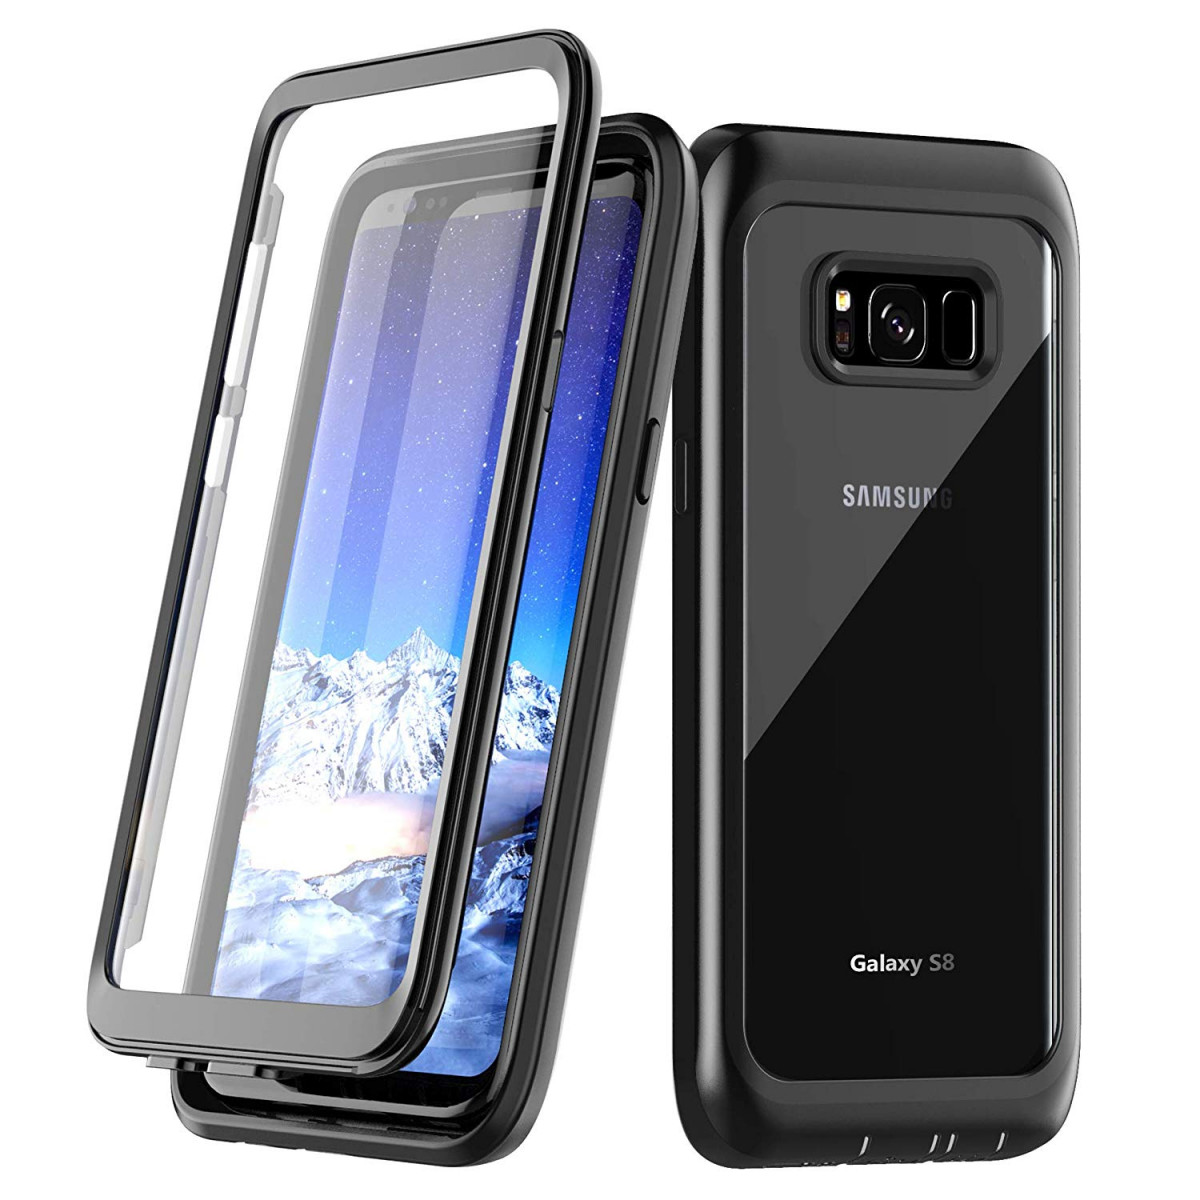 more photos 49178 43553 Samsung Galaxy S8 Case, Singdo Built-in Screen Protector Cover 360 Degree  Protection Rugged Clear Bumper Case with Kickstand for Samsung Galaxy S8 ...